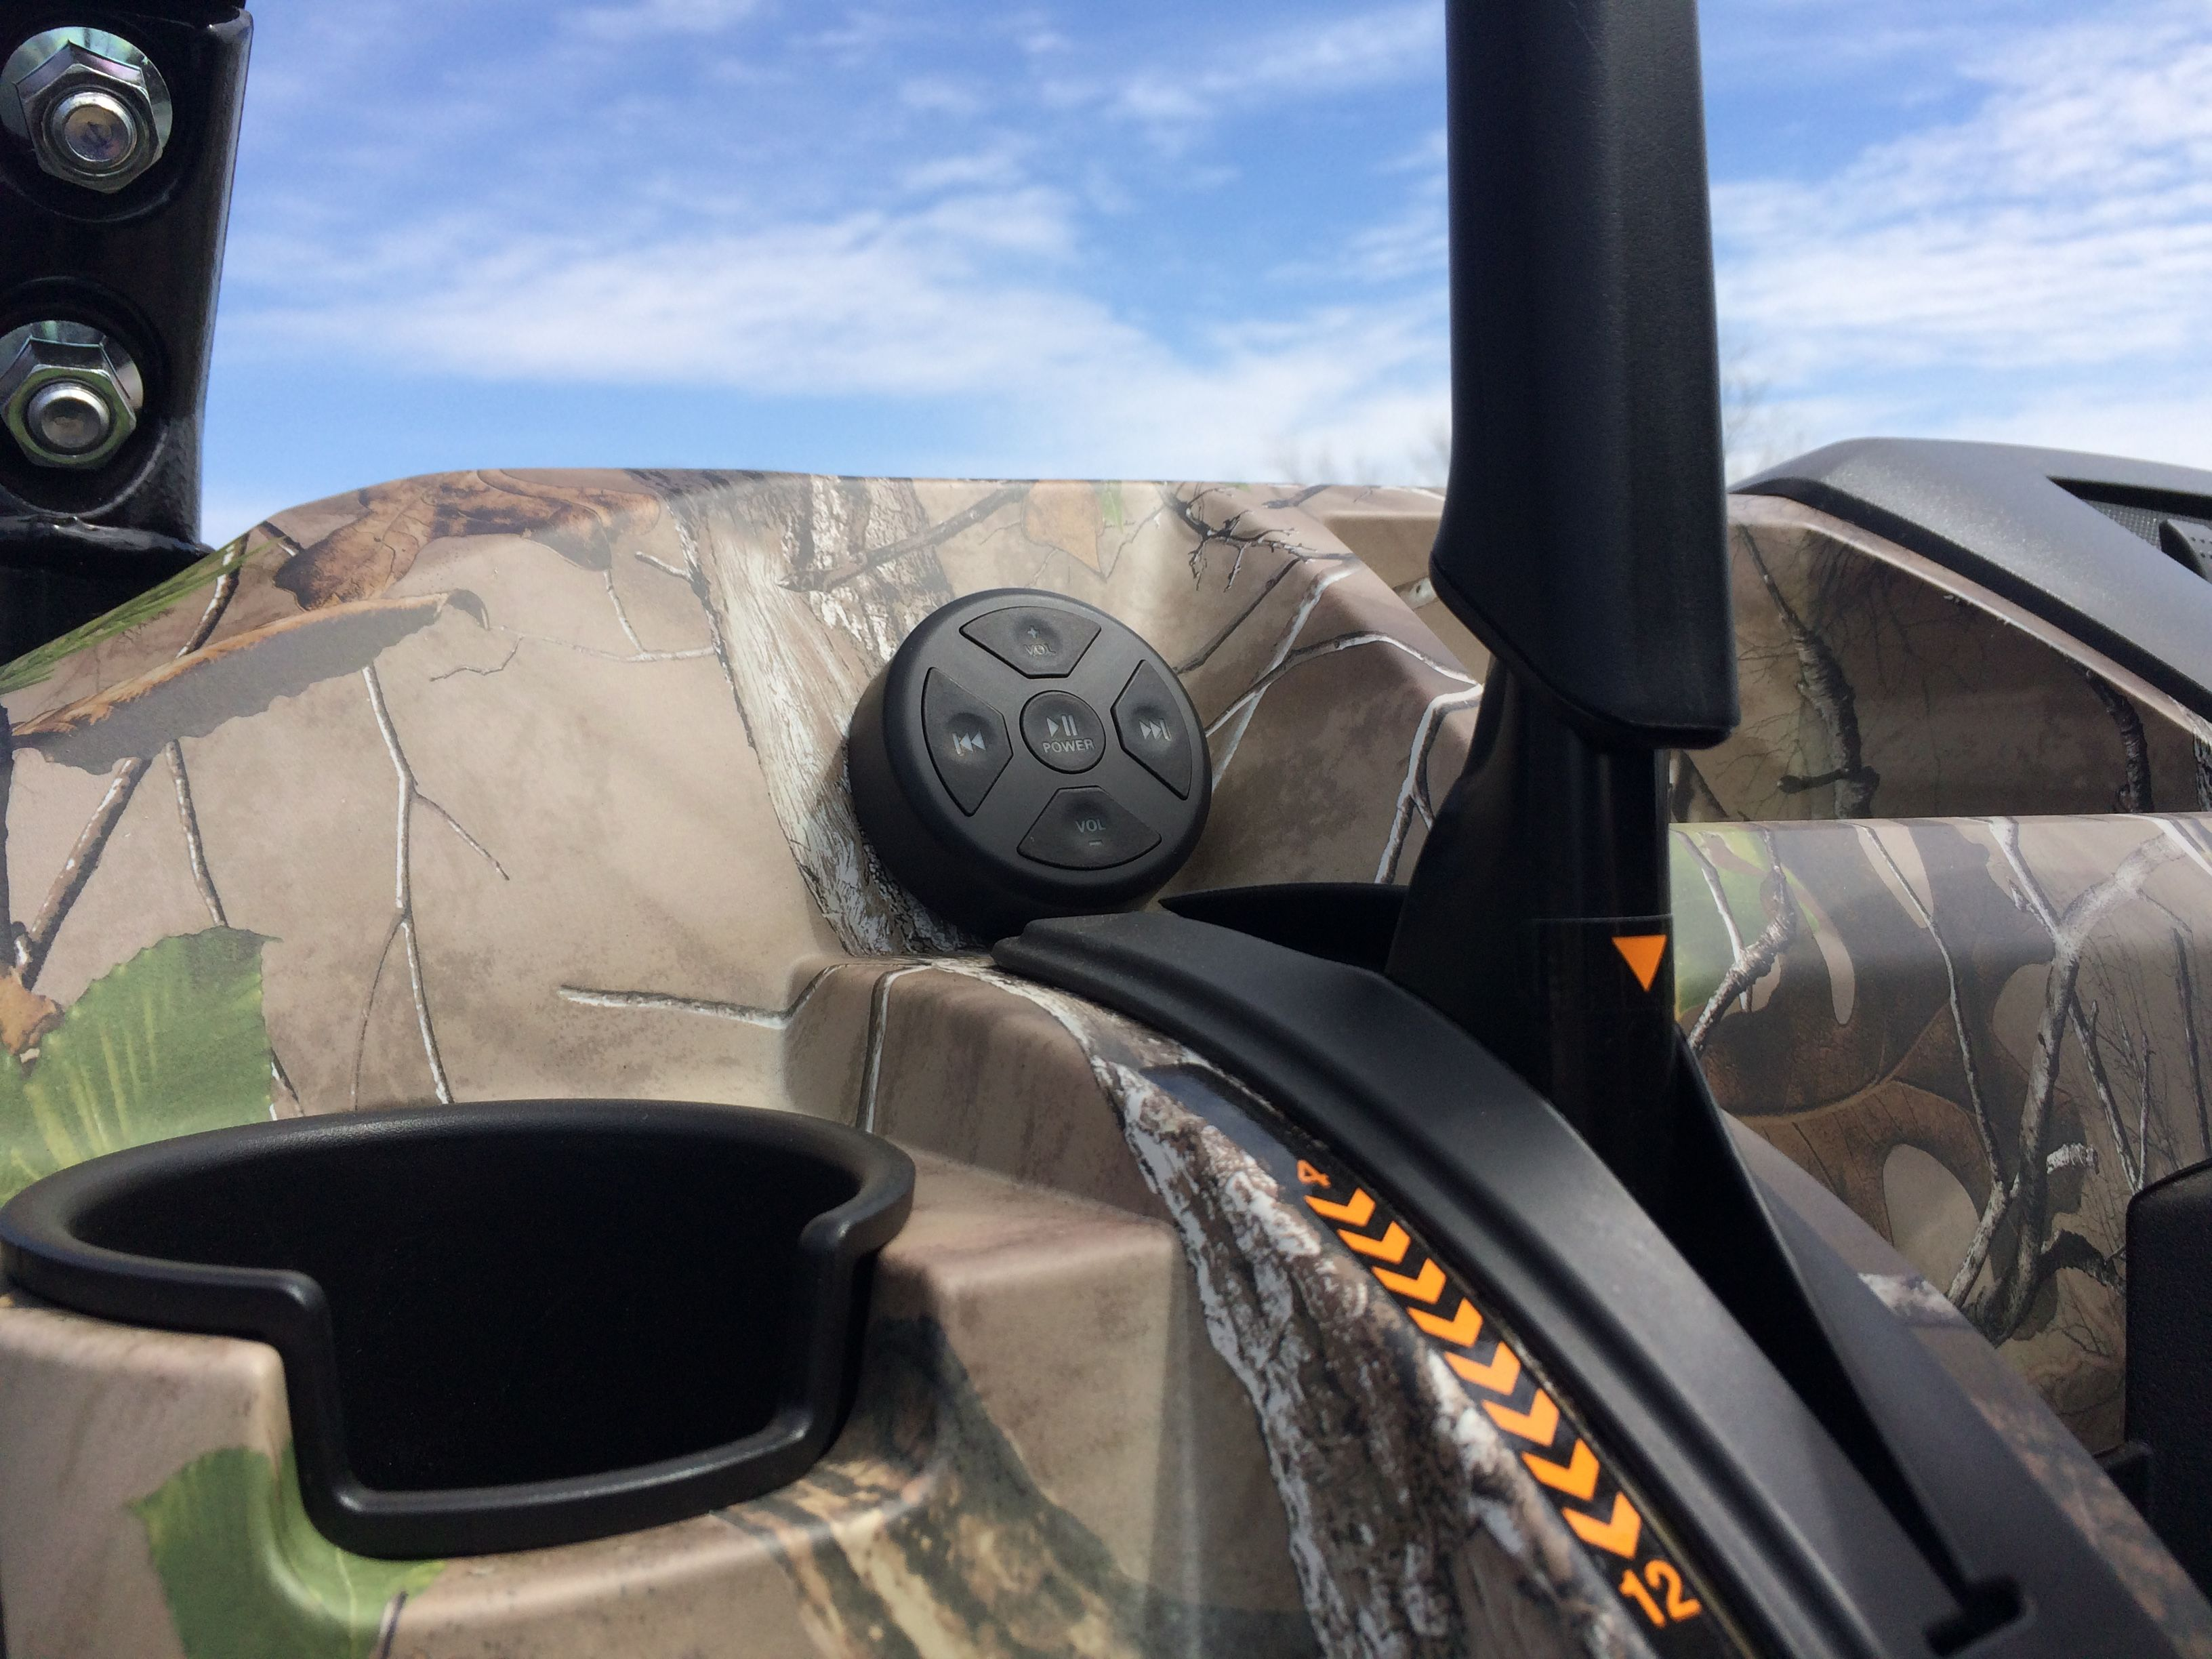 The exciting brand new street legal cruser sport elec car amp golf cart - Find This Pin And More On Mtx Motorsports Audio By Mtxaudio